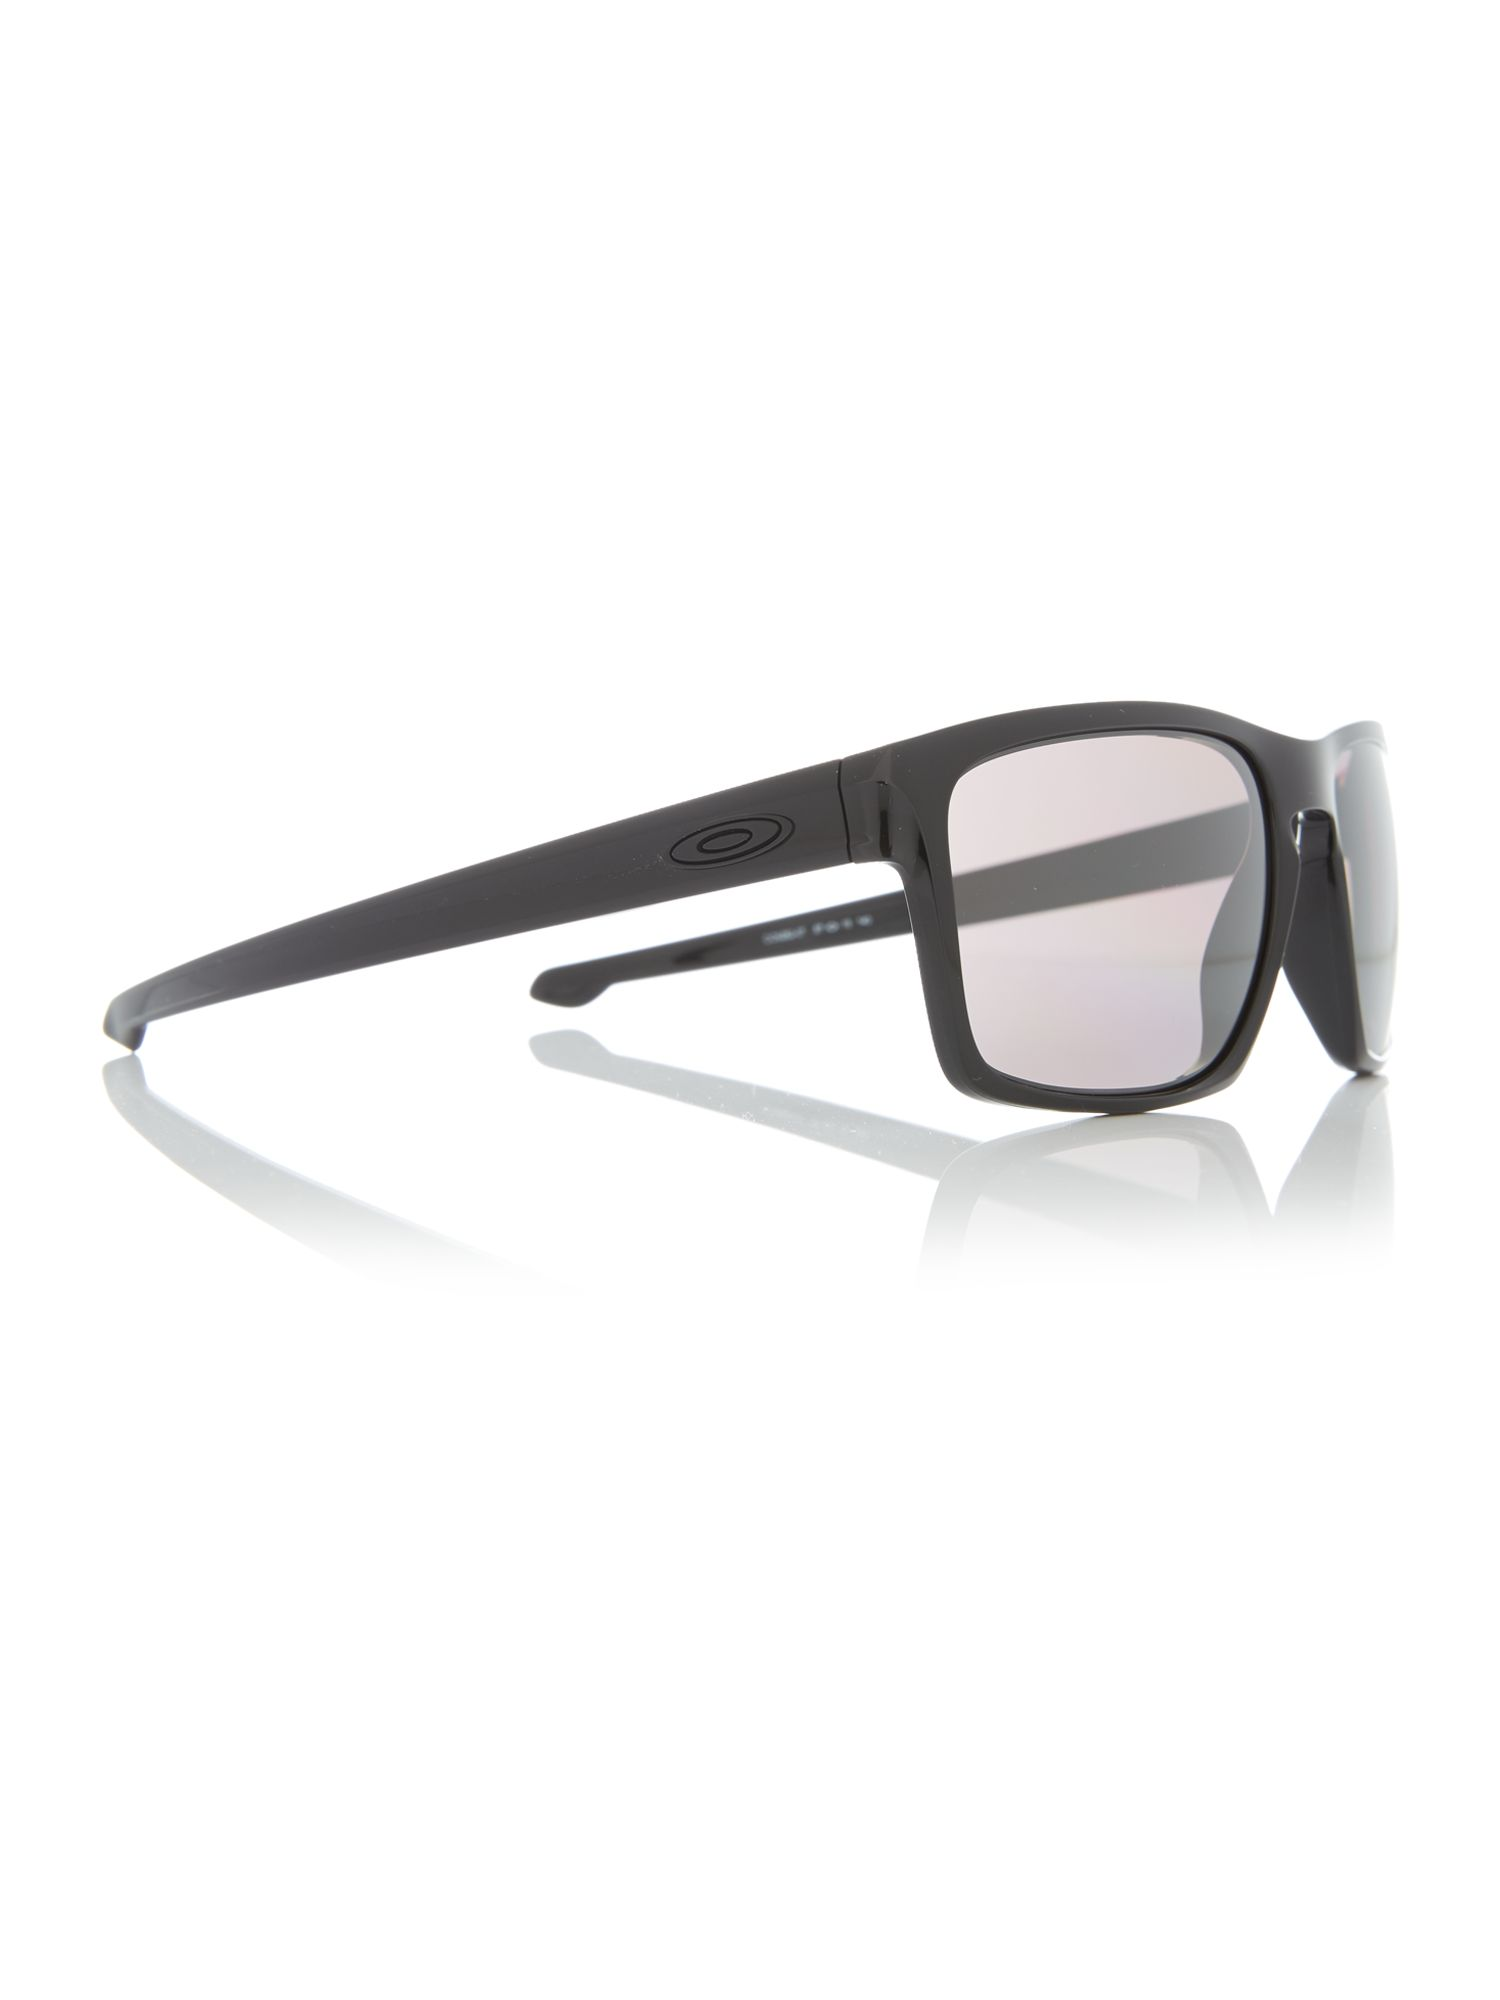 4f83e6d380 Cheap Oakley Radar Sunglasses For Sale « Heritage Malta